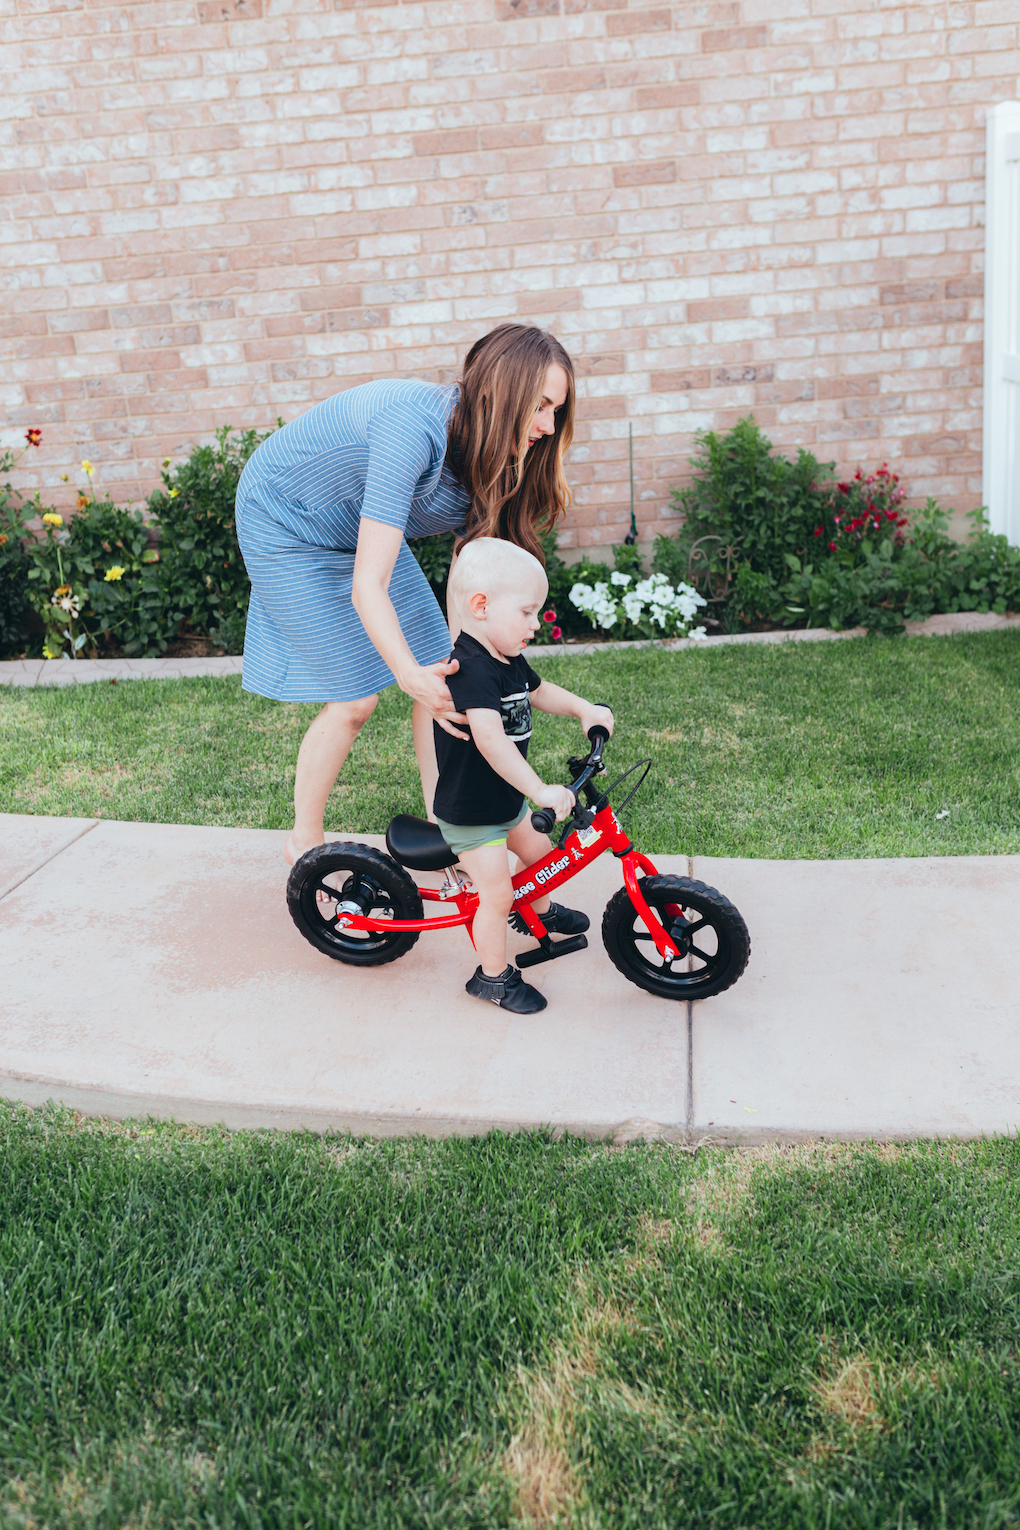 KINGS HAPPY UN-BIRTHDAY - KIDS BALL PARTY by Utah blogger Dani Marie - Mom helping toddler to ride red balance bike